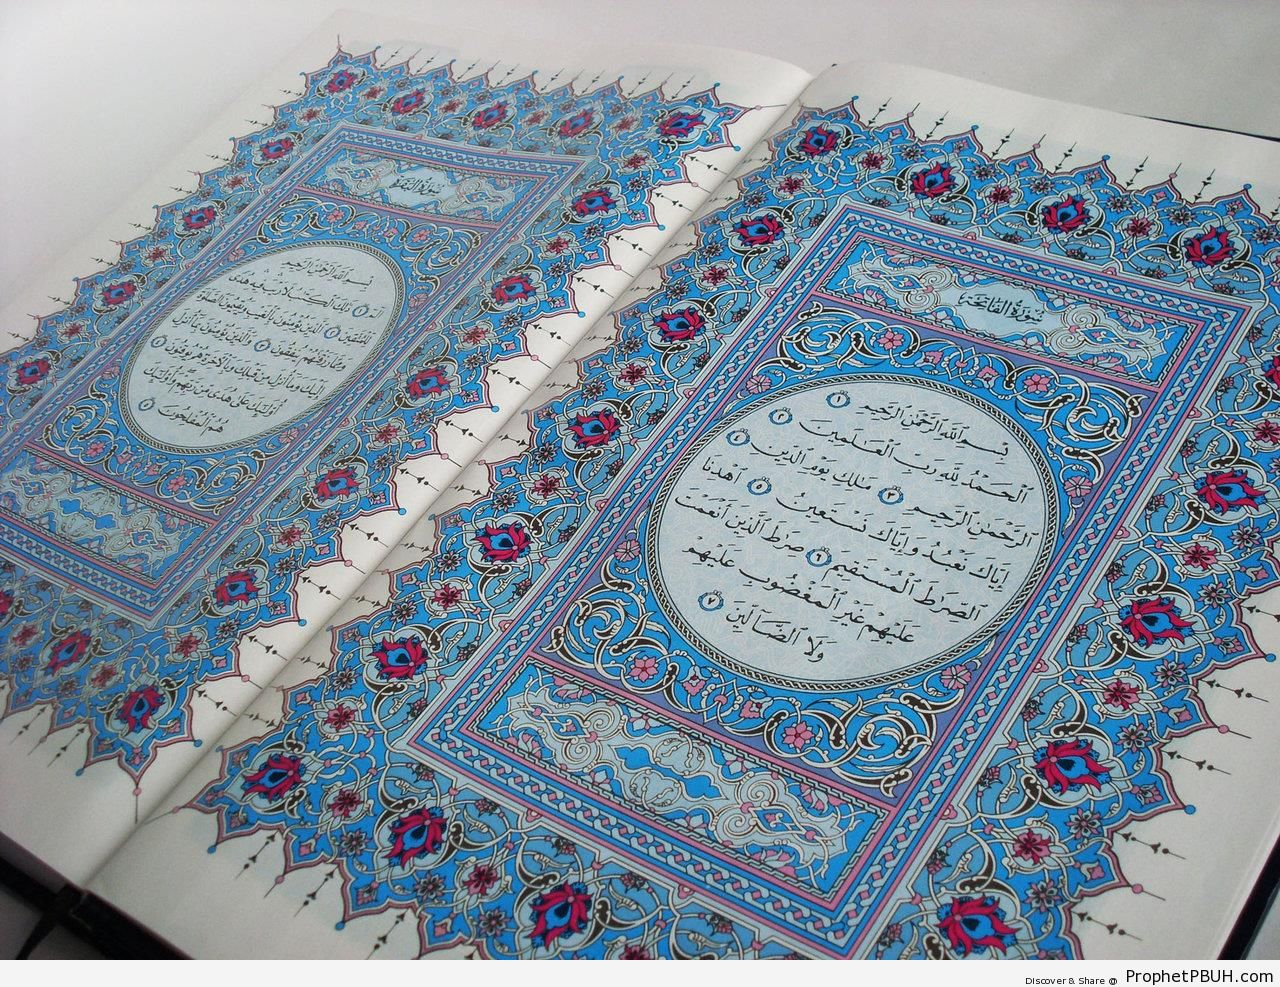 Photo of the First Page of a Book of Quran (Showing Surat al-Fatihah and al-Baqarah) - Mushaf Photos (Books of Quran)